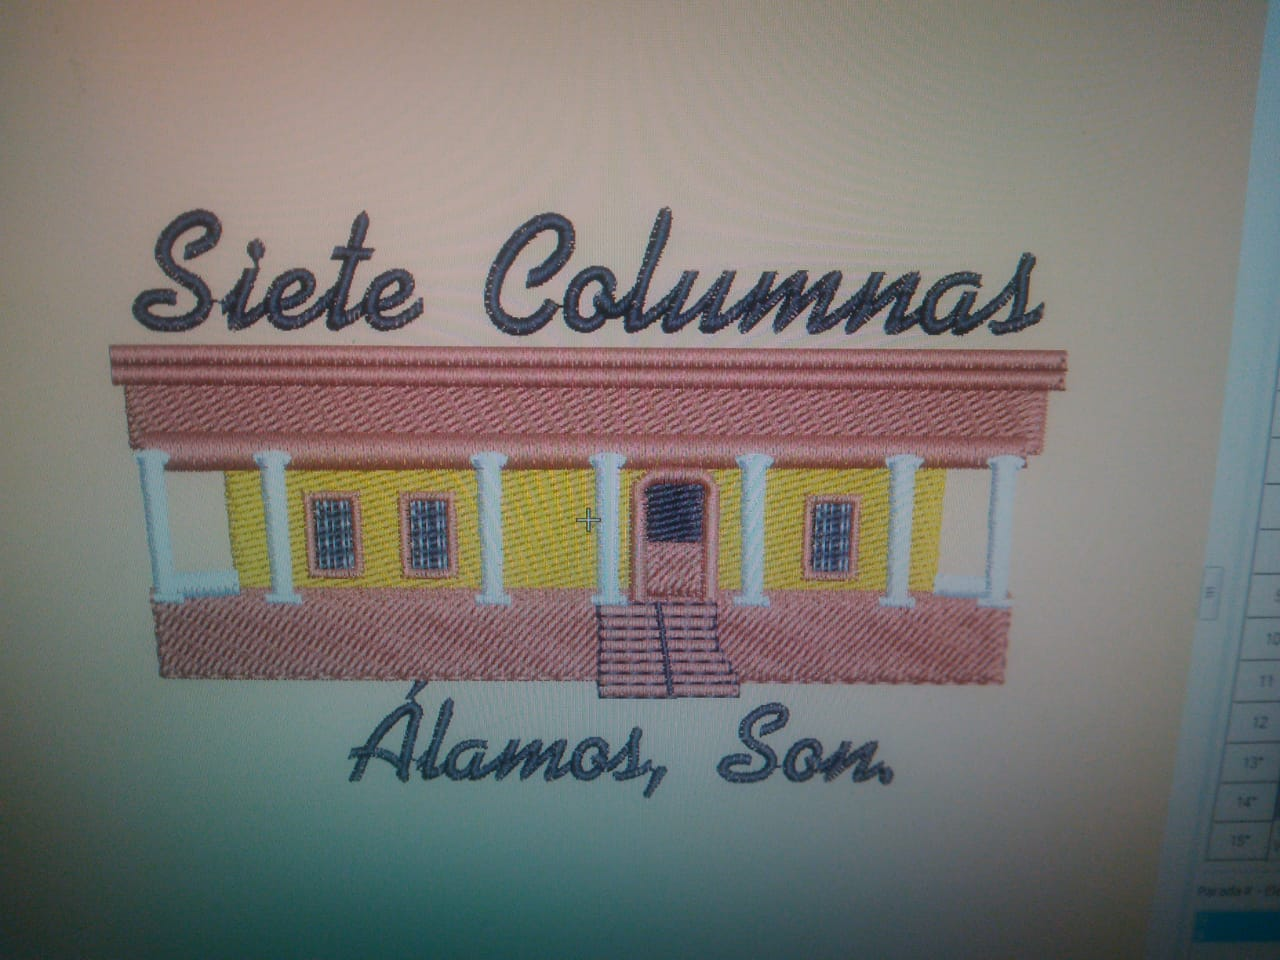 Siete Columnas                                       is for Sale  as a beautiful home or lucrative business